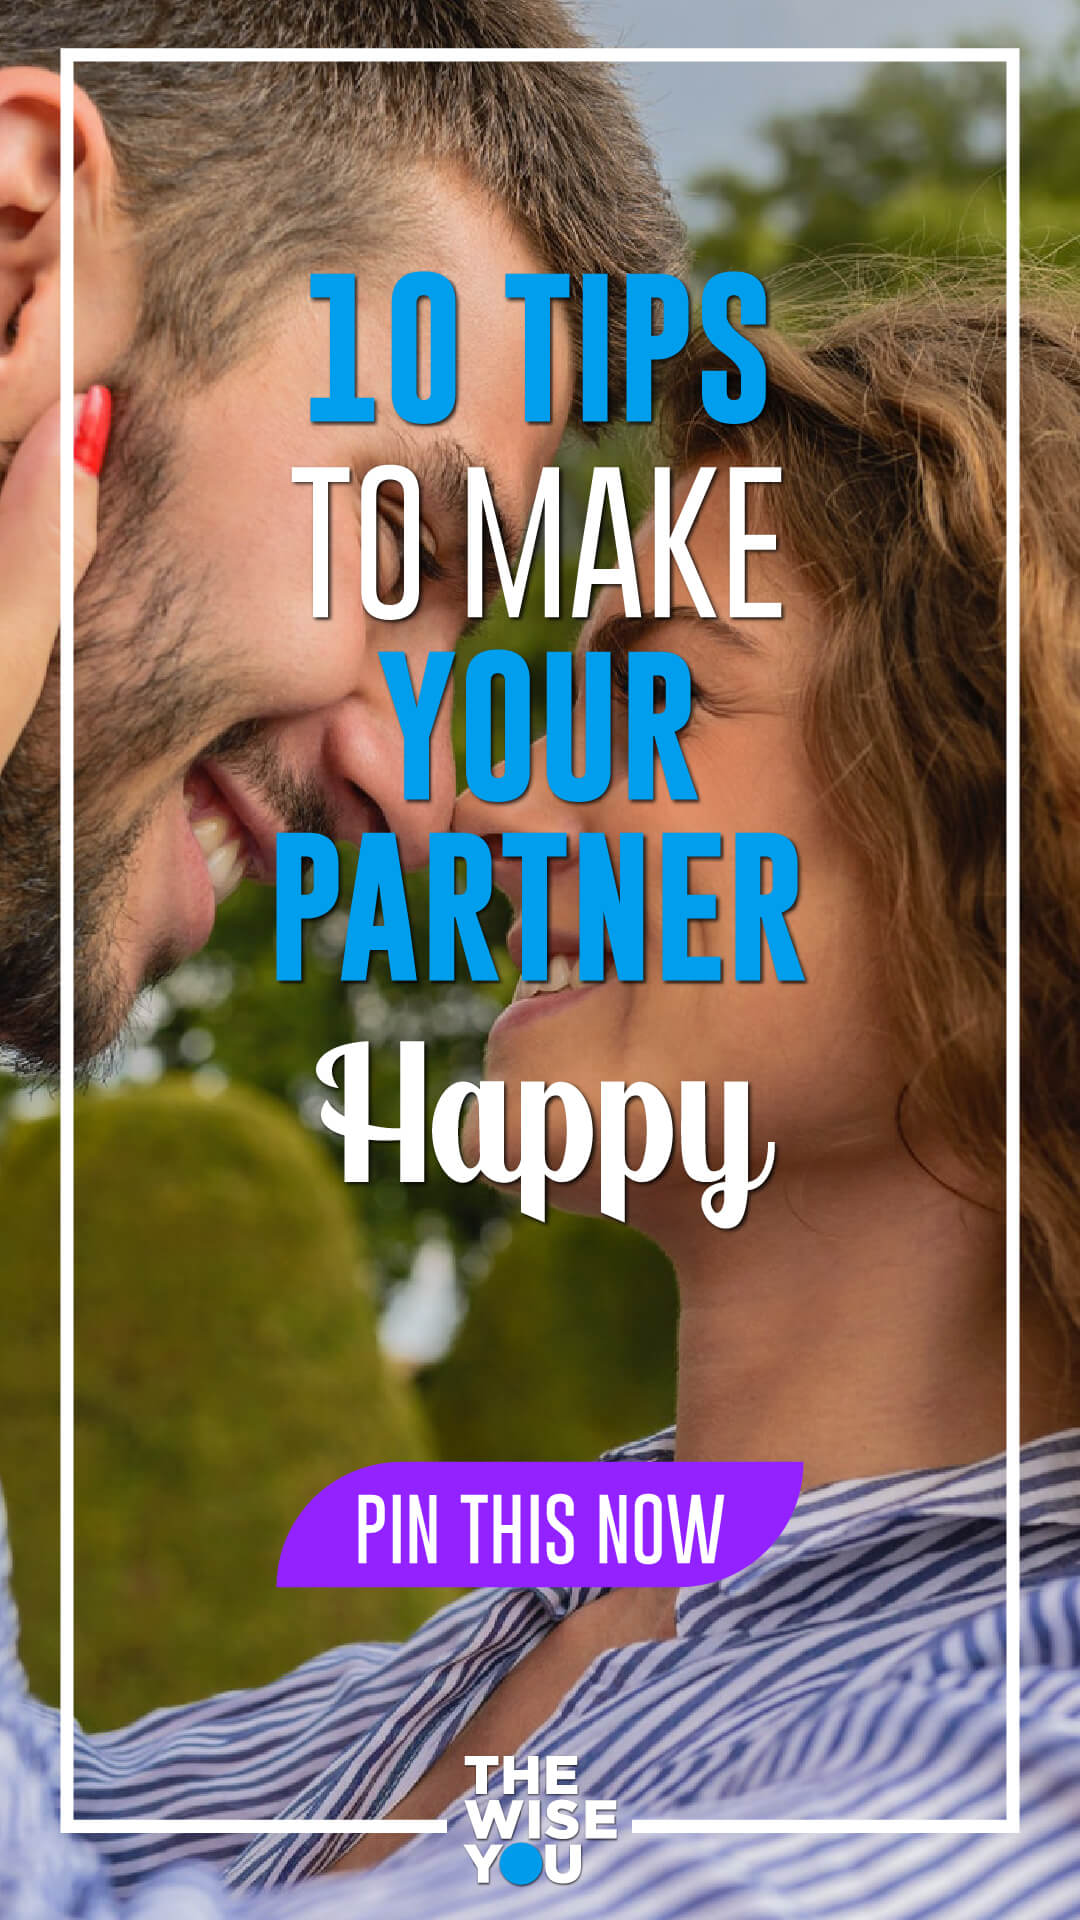 10 Tips to Make Your Partner Happy